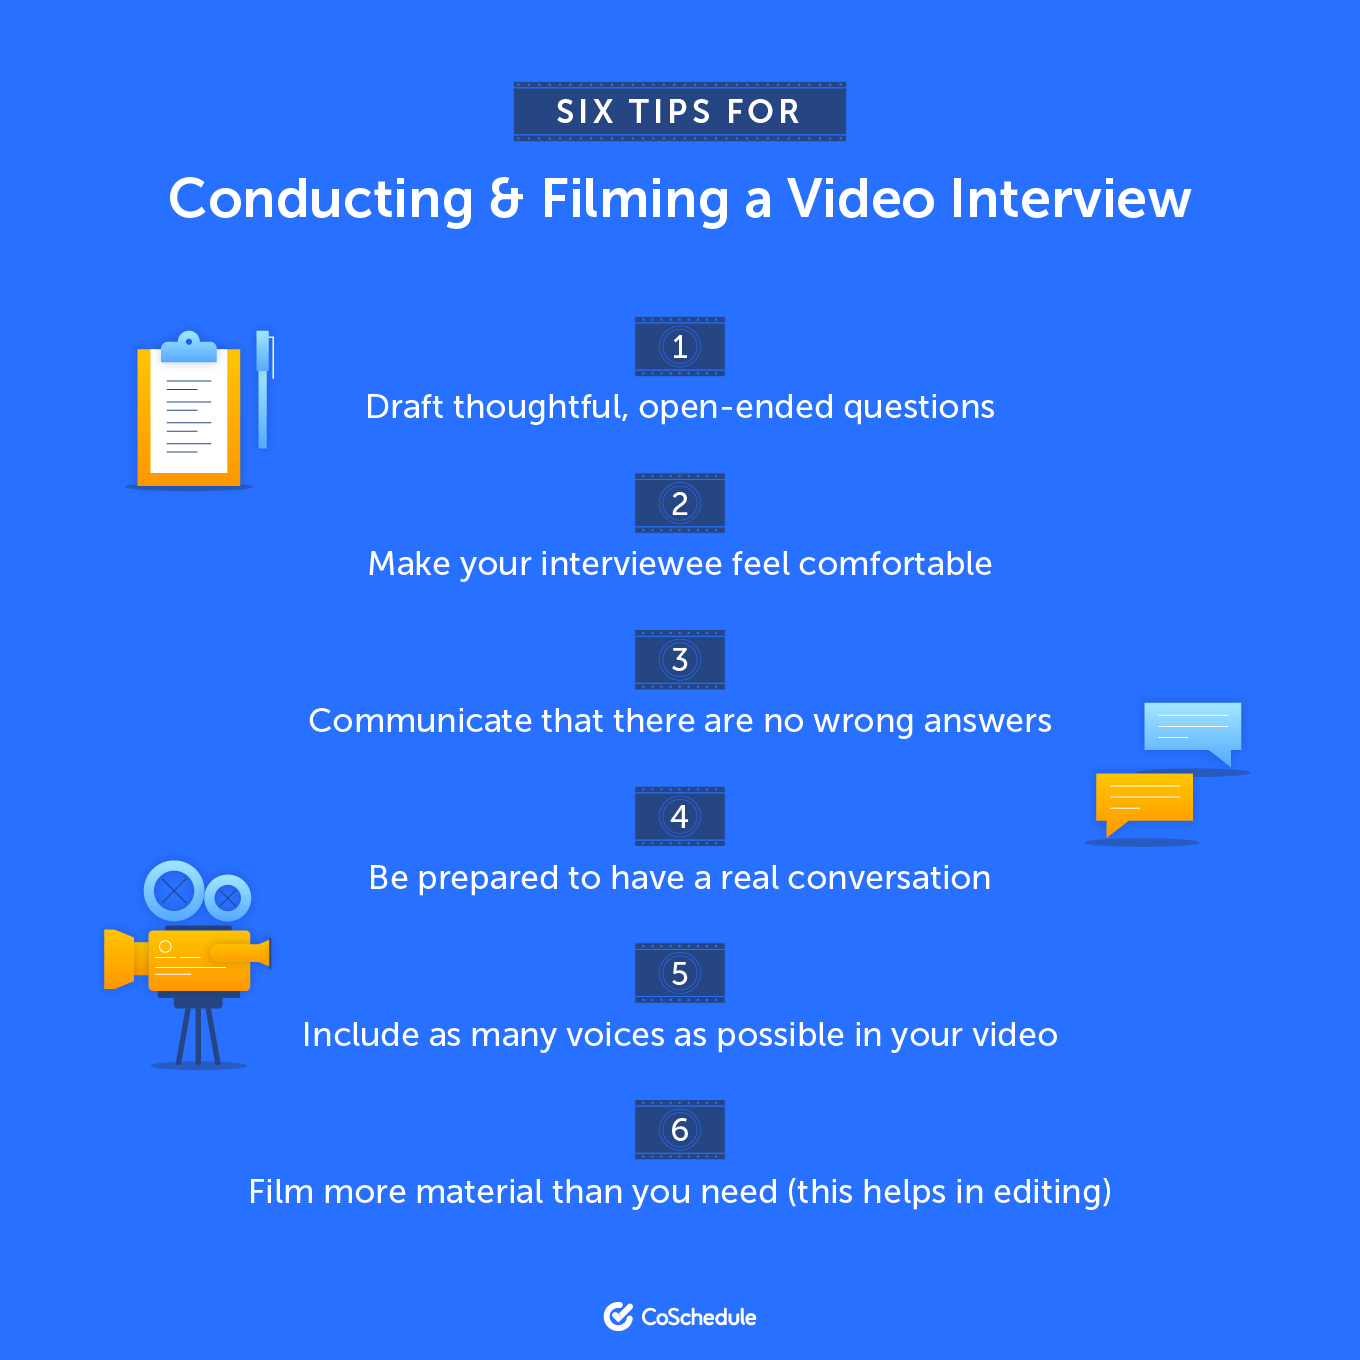 Six tips for conducting and filming a video interview